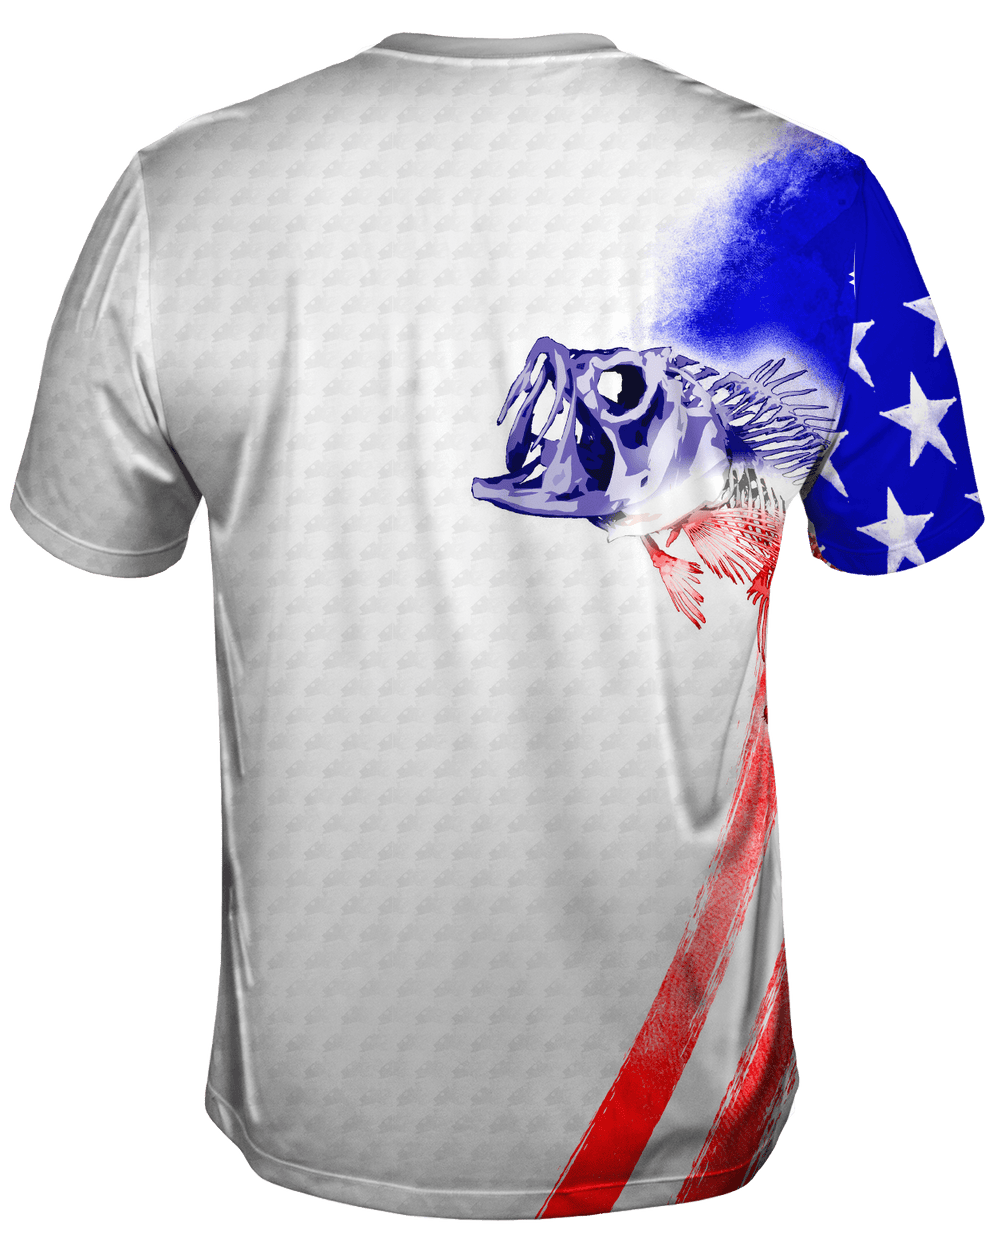 Bass Stars & Stripes Short Sleeve Big & Tall - Bones Outfitters